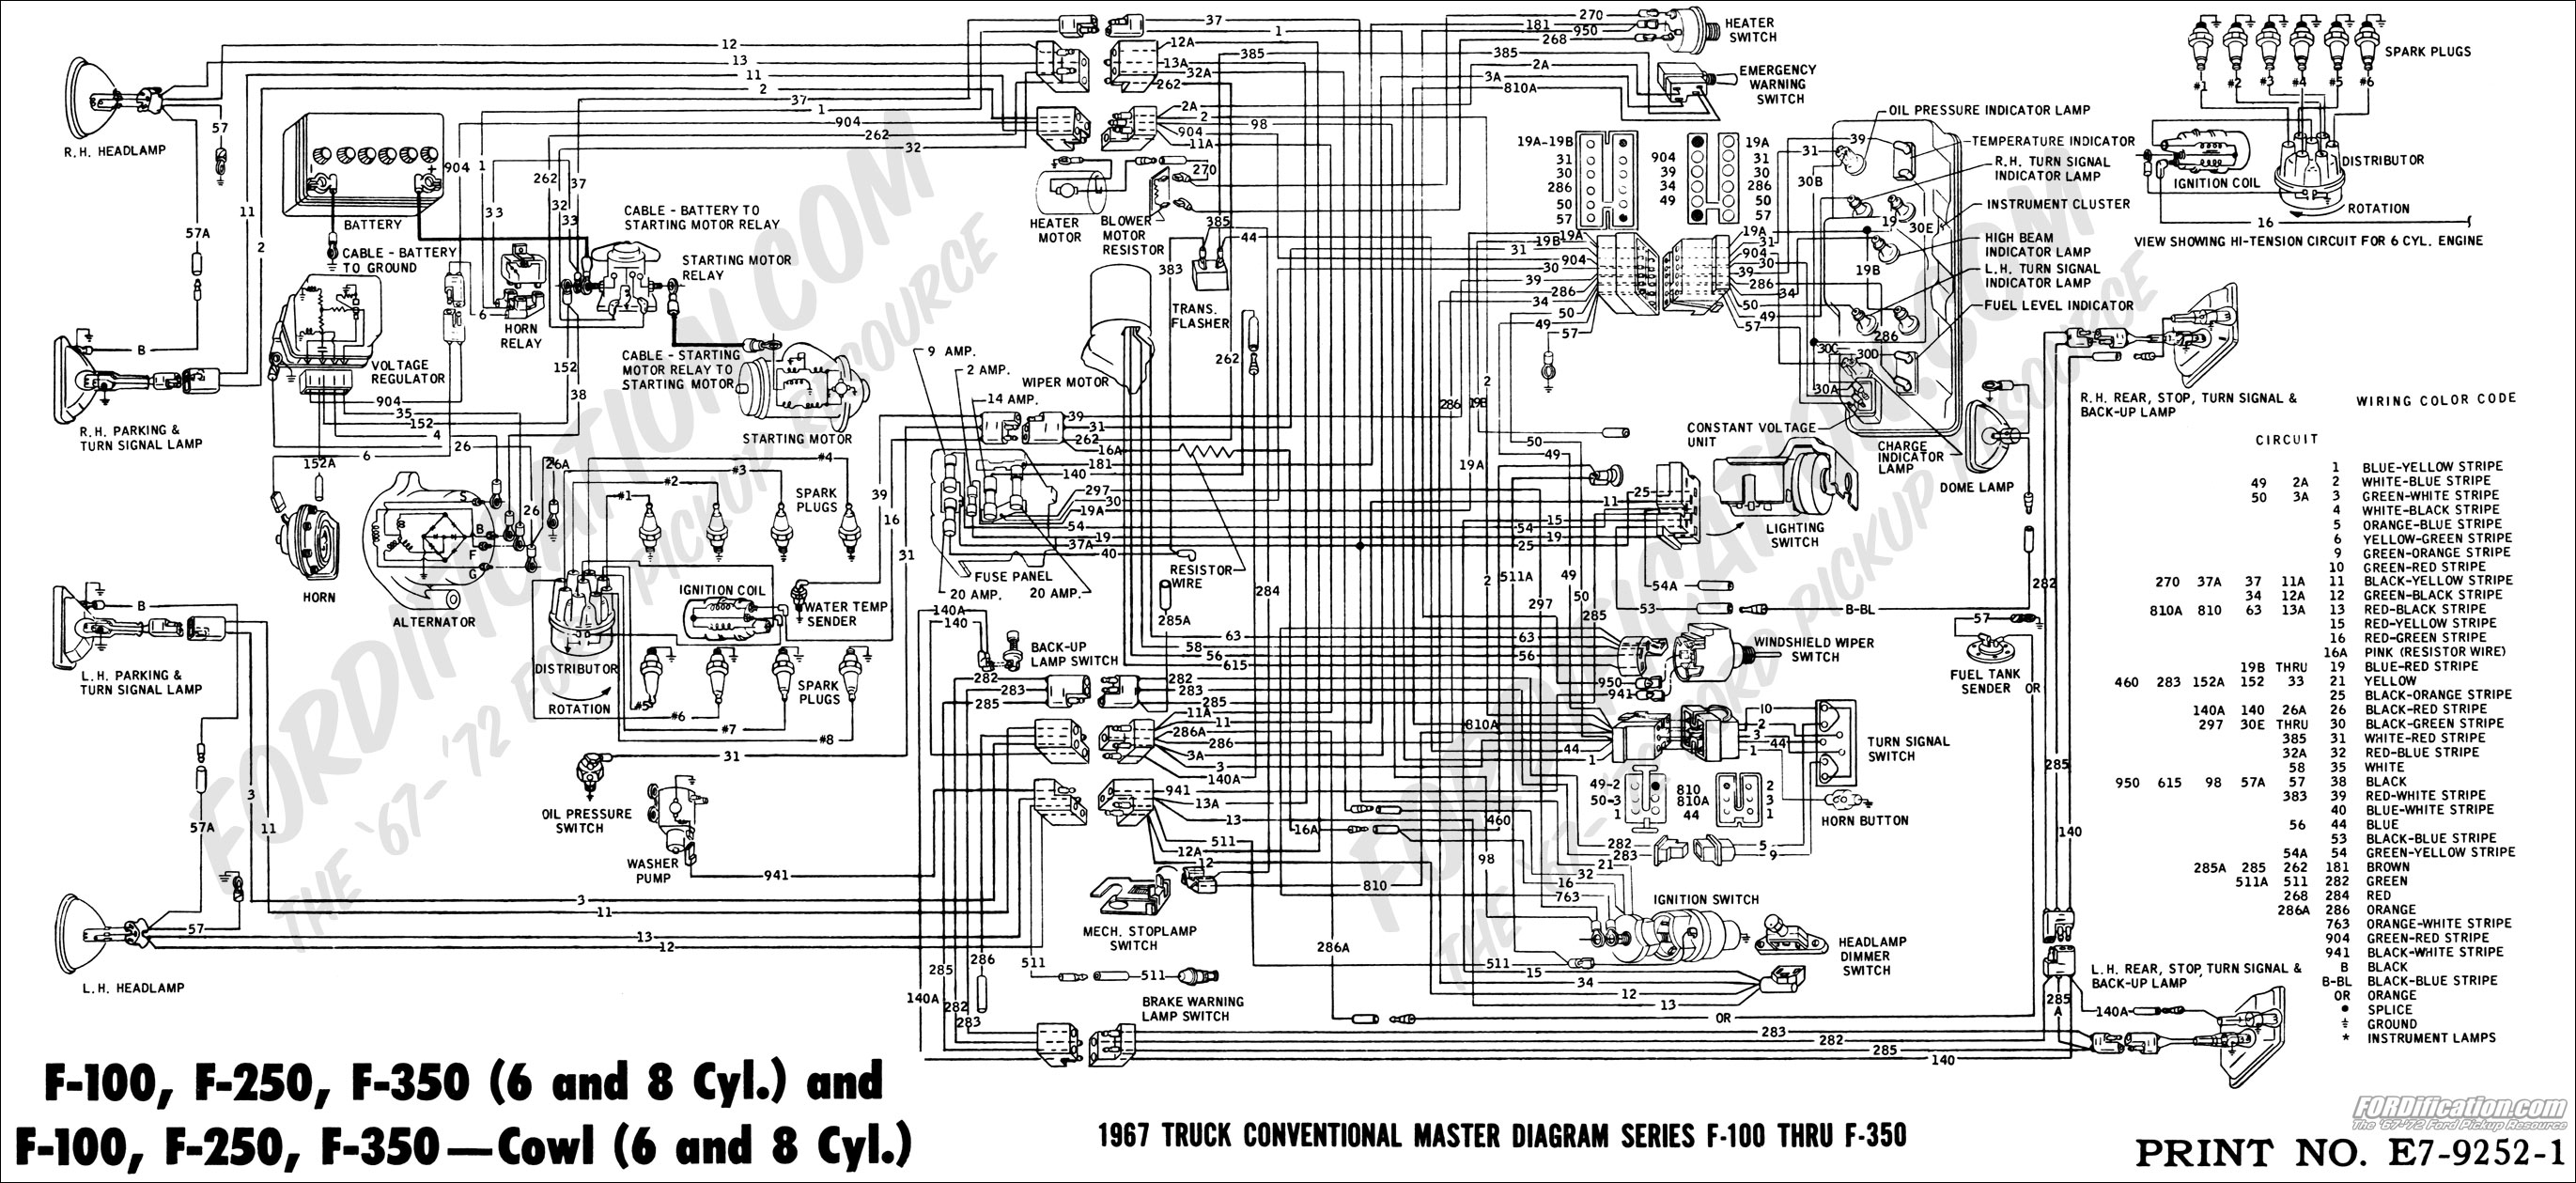 67masterdiagram ford truck technical drawings and schematics section h wiring 1990 ford f150 wiring diagram at webbmarketing.co